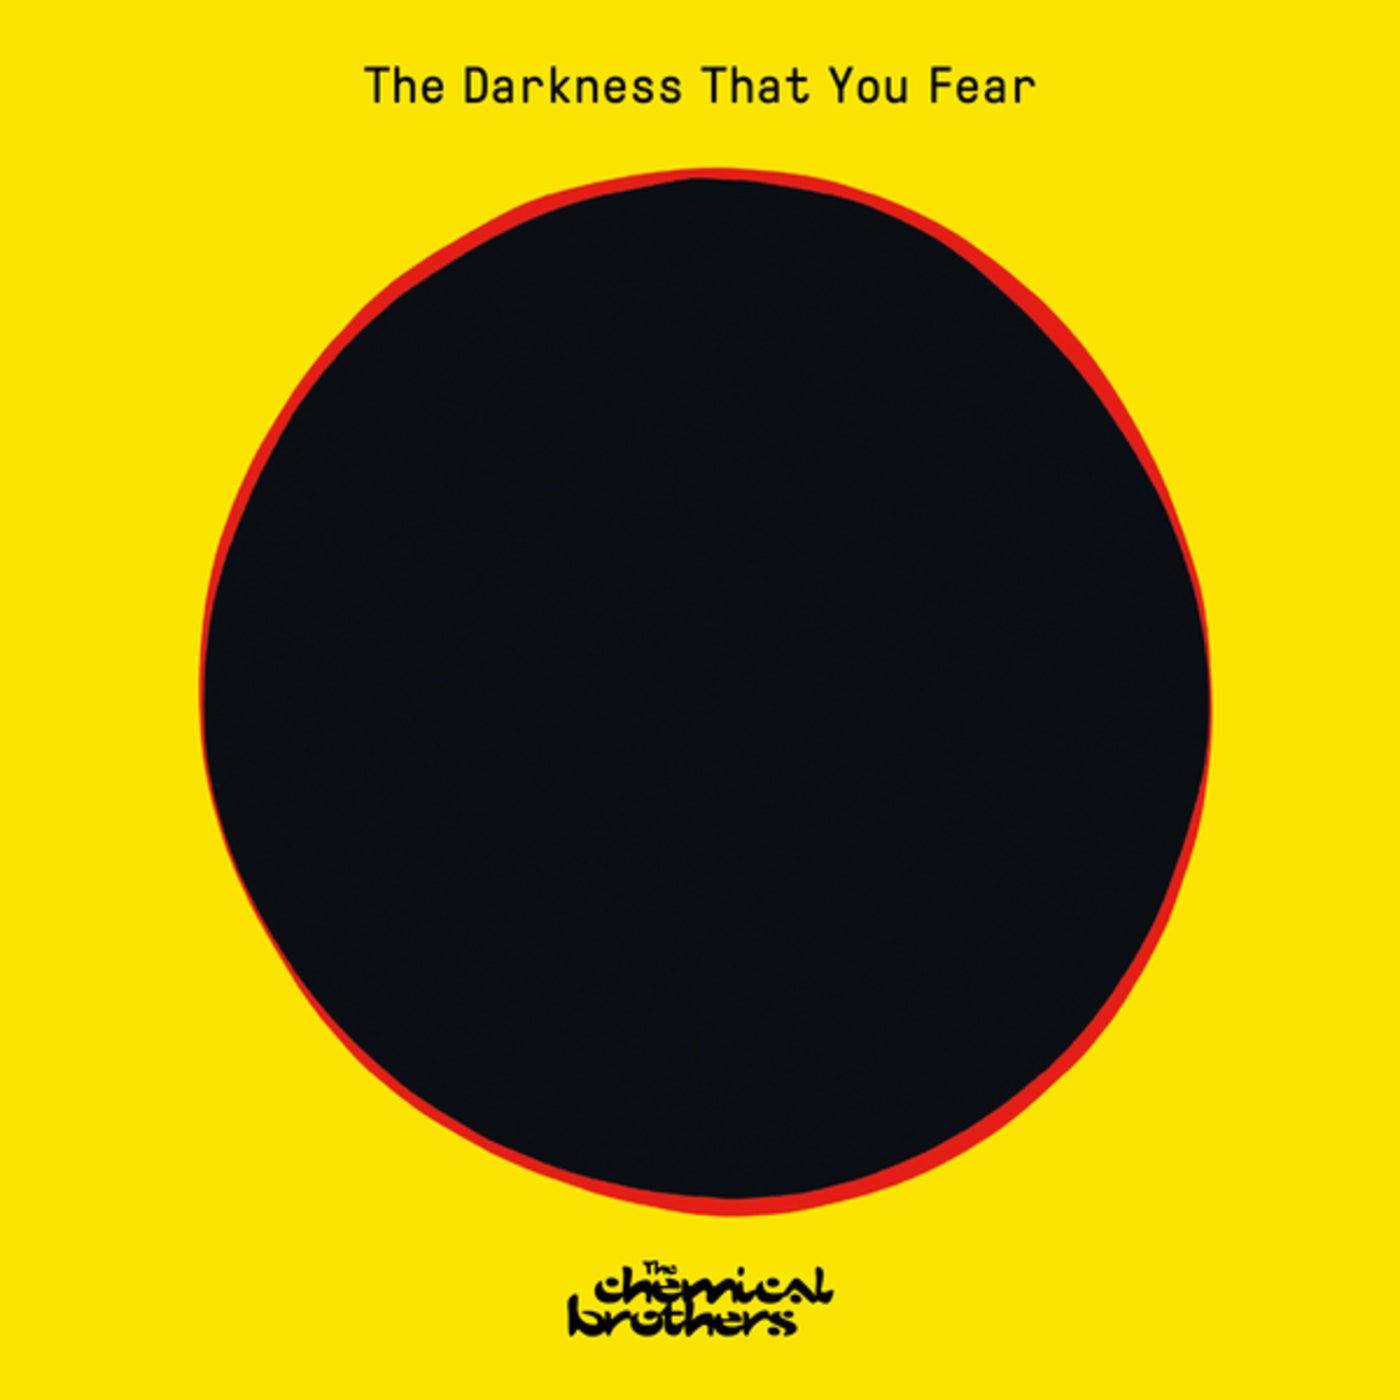 The Darkness That You Fear (The Blessed Madonna Remix)